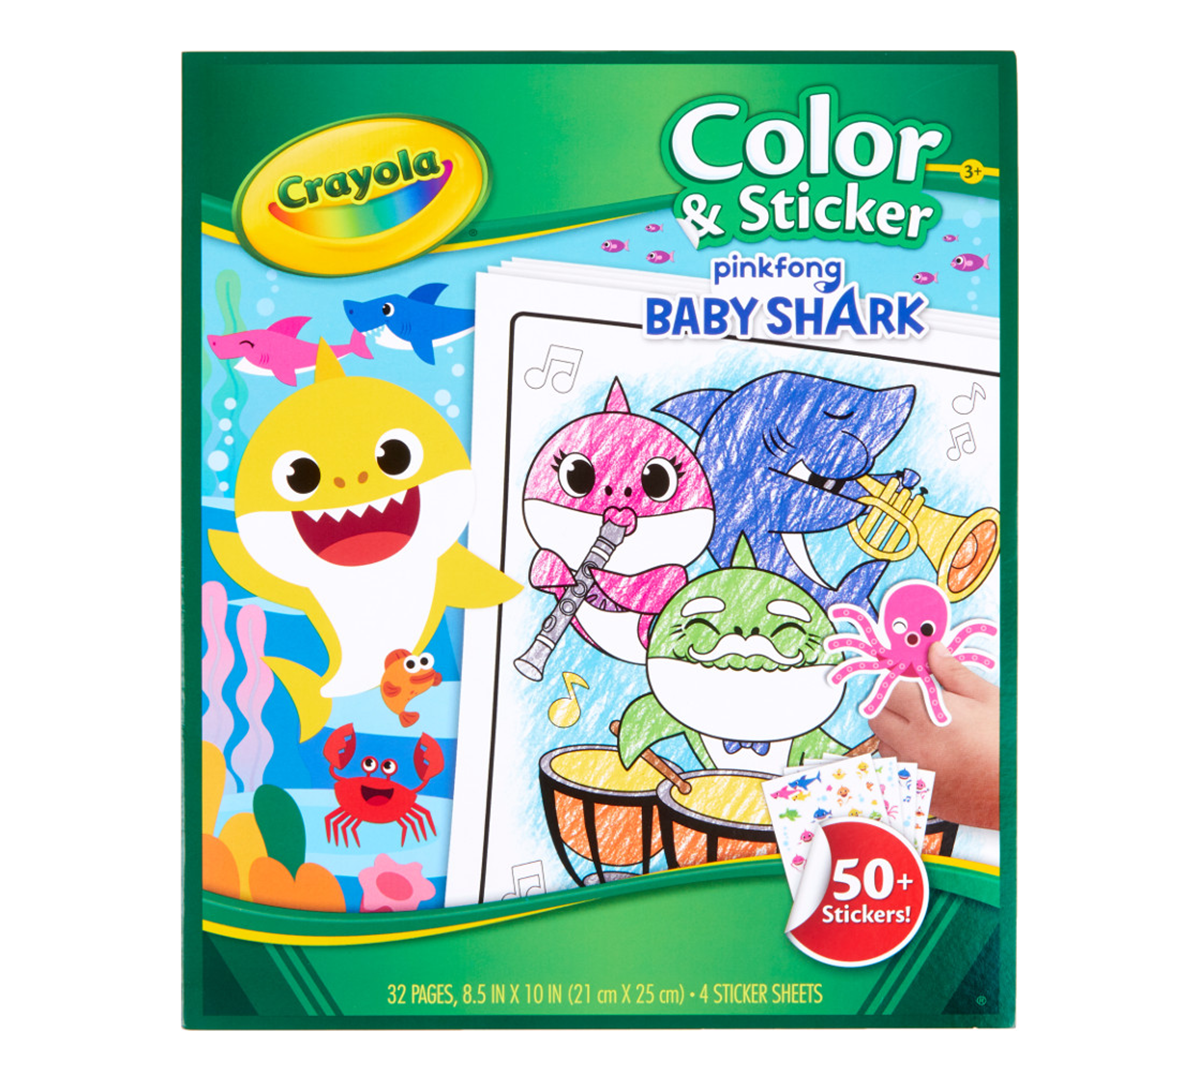 Crayola Baby Shark Coloring Pages and Stickers Crayola